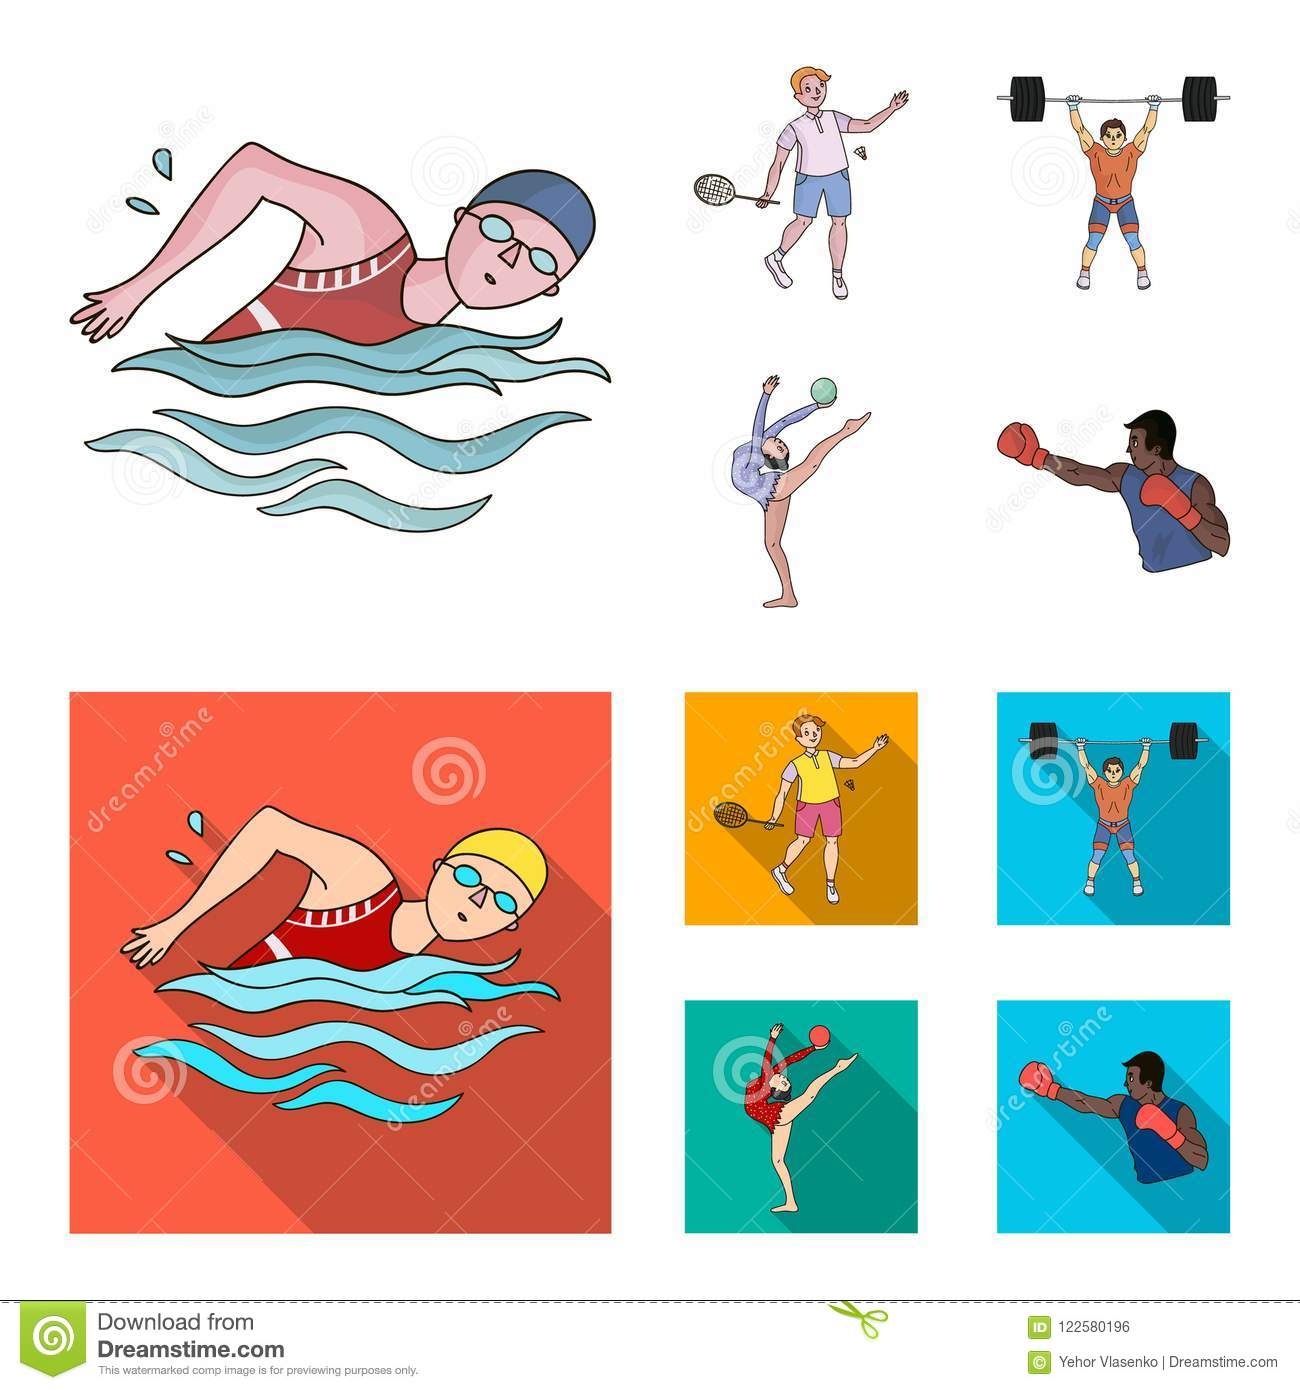 Swimming Badminton Weightlifting Artistic Gymnastics Olympic Sport Set Collection Icons In Cartoon Flat Style Vector Stock Vector Illustration Of Logo Heavy 122580196